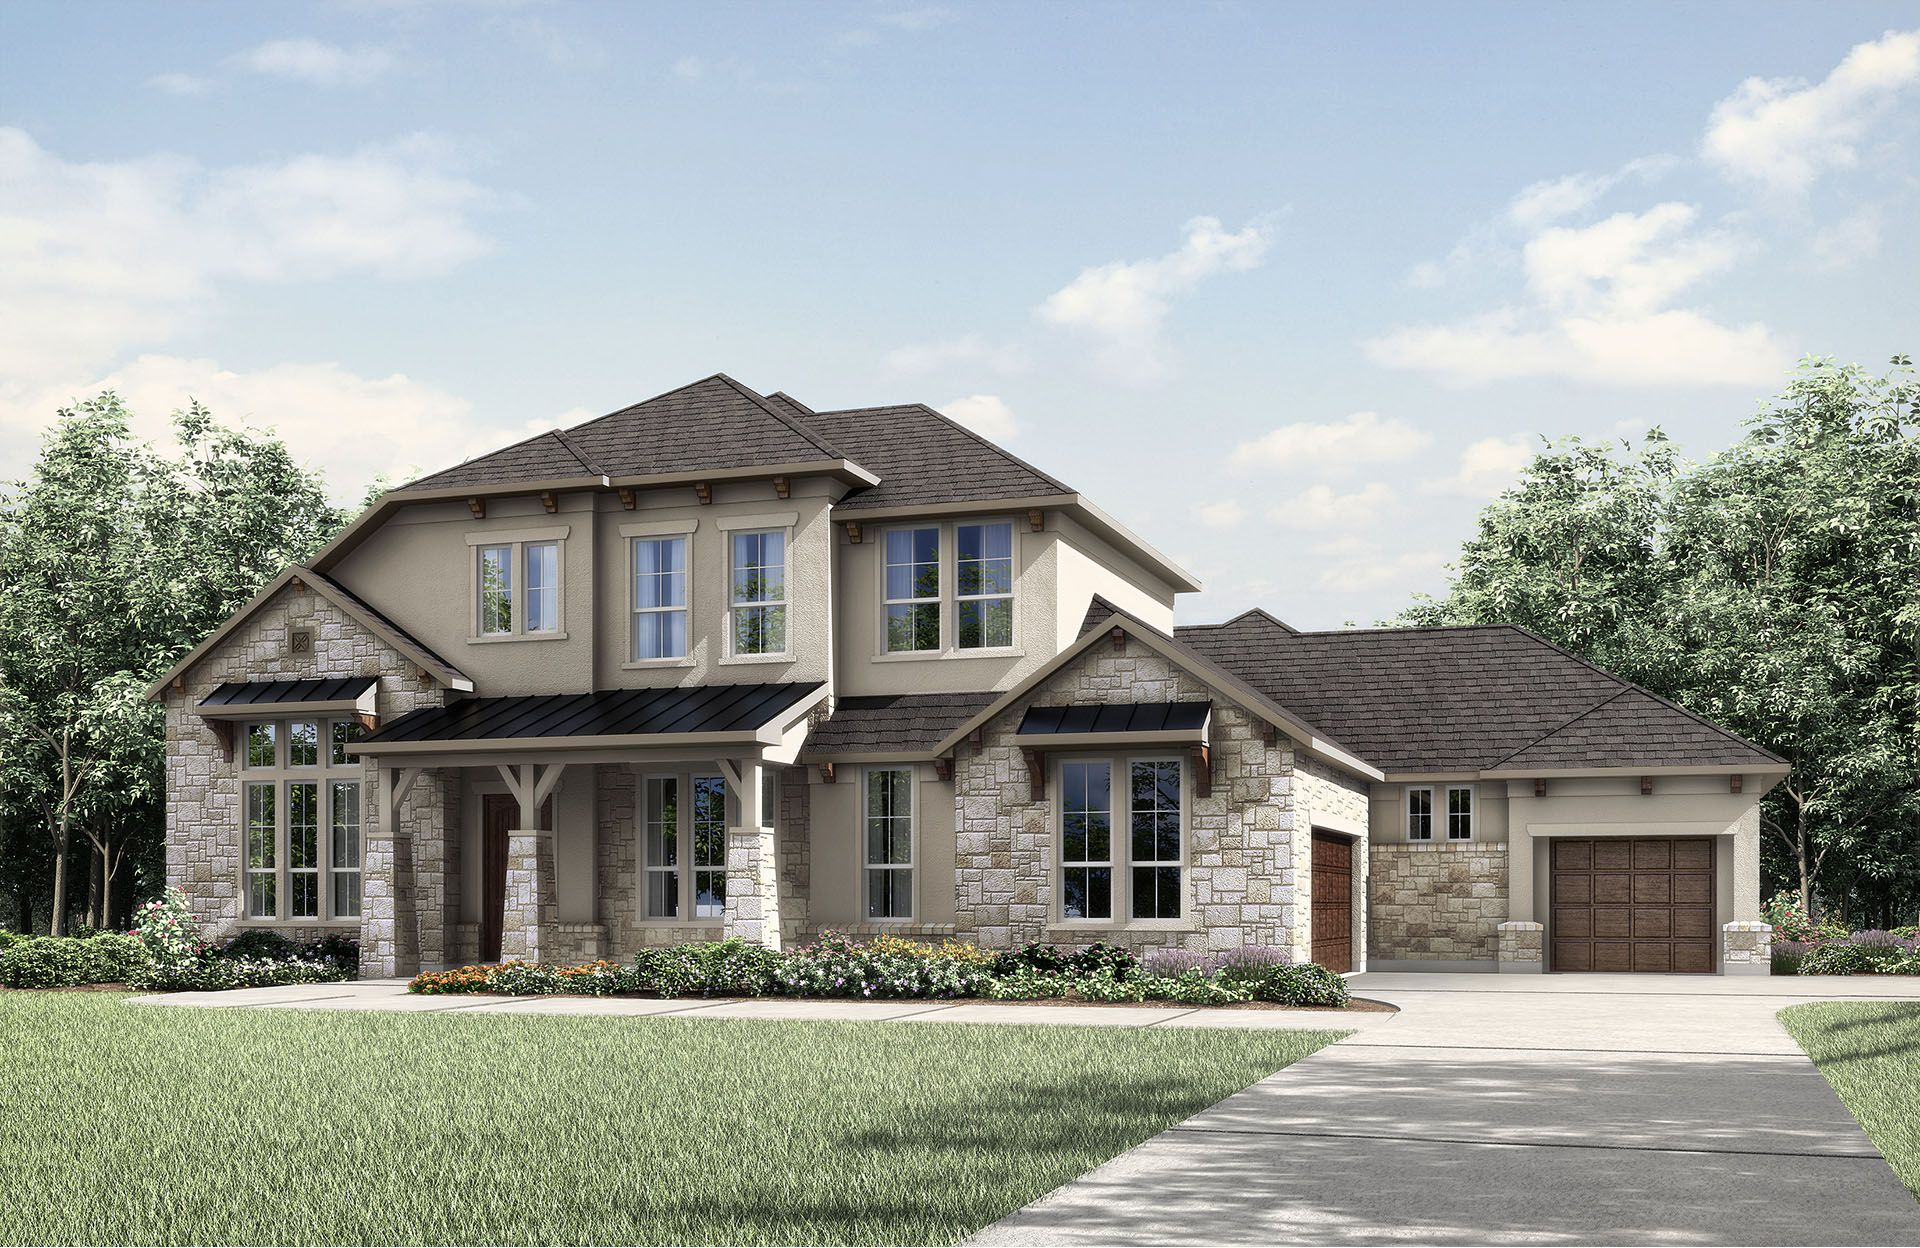 Single Family for Active at Colinas Ii 311 Waters View Court Dripping Springs, Texas 78620 United States